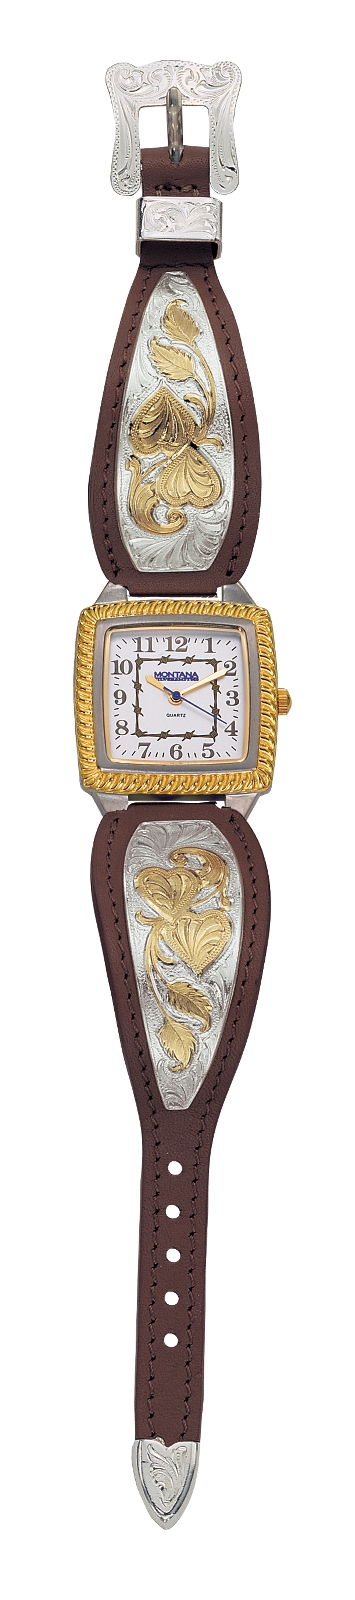 Montana Silversmiths Hearts of Gold Ladies Brown Leather Band Watch, Large Square Face